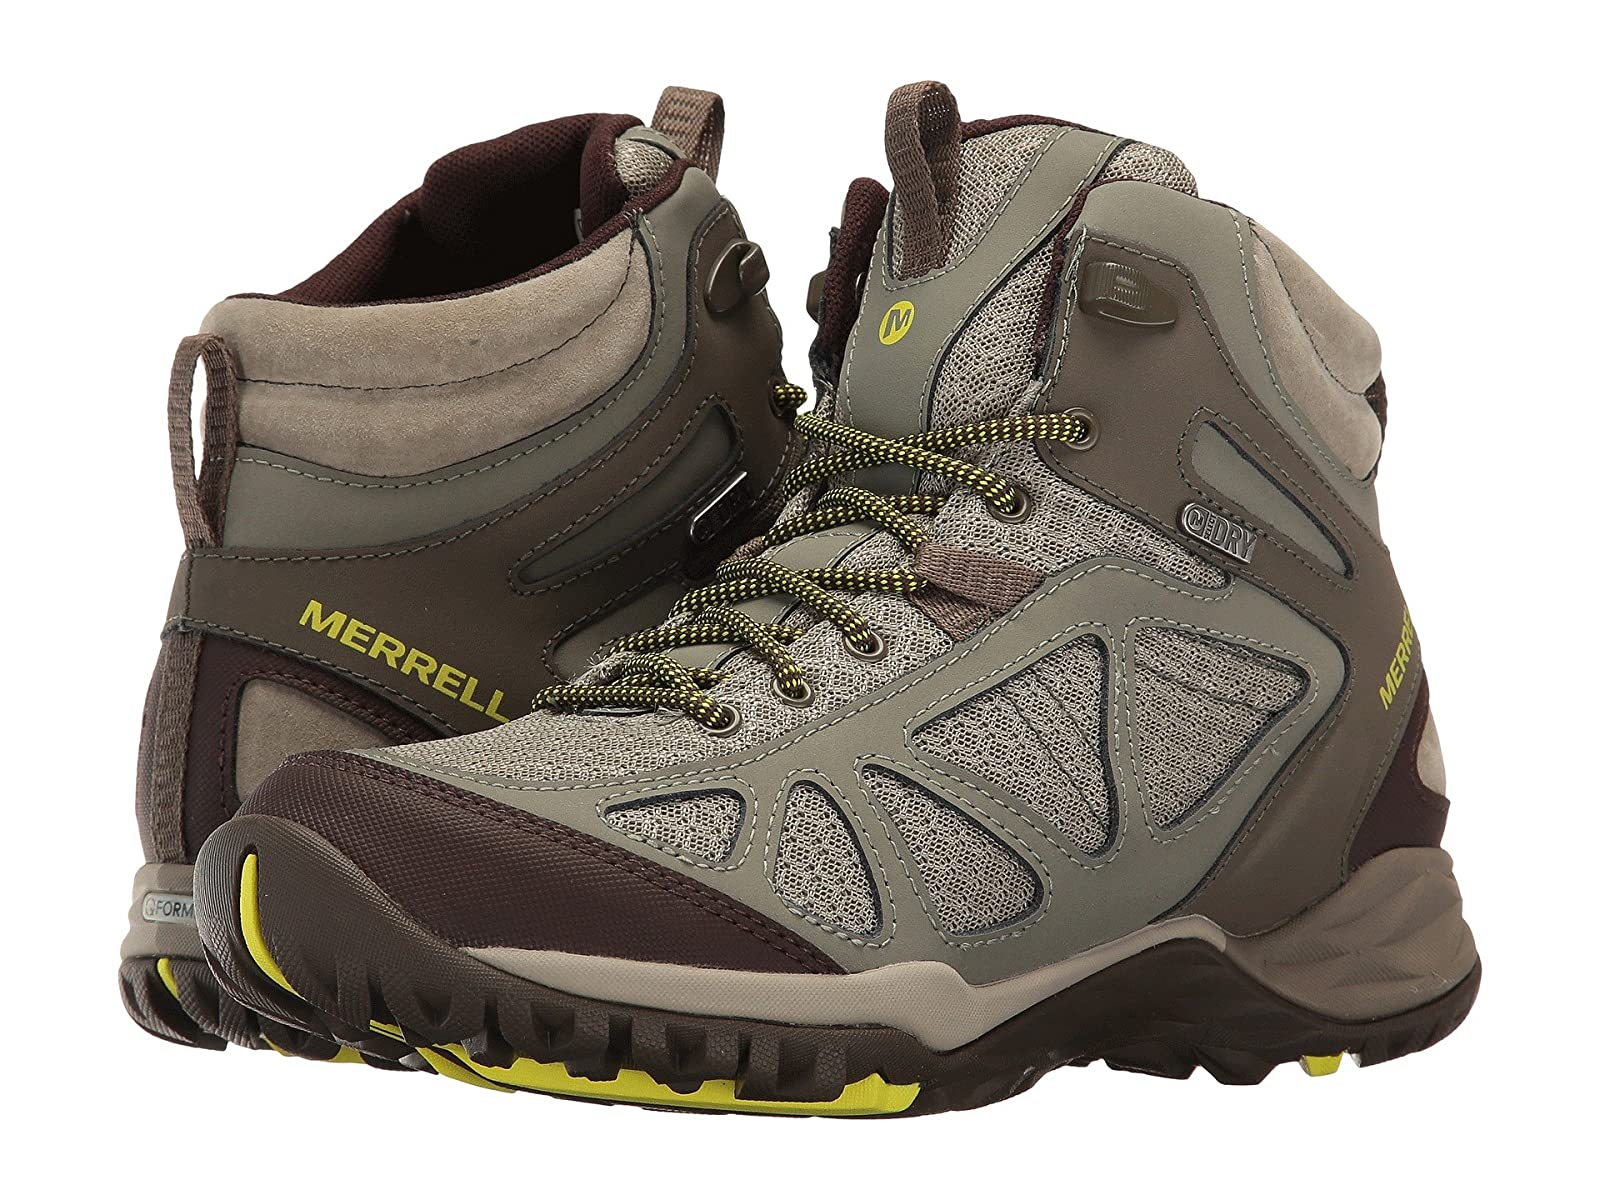 Merrell Siren Sport Q2 Mid WaterproofEconomical and quality shoes